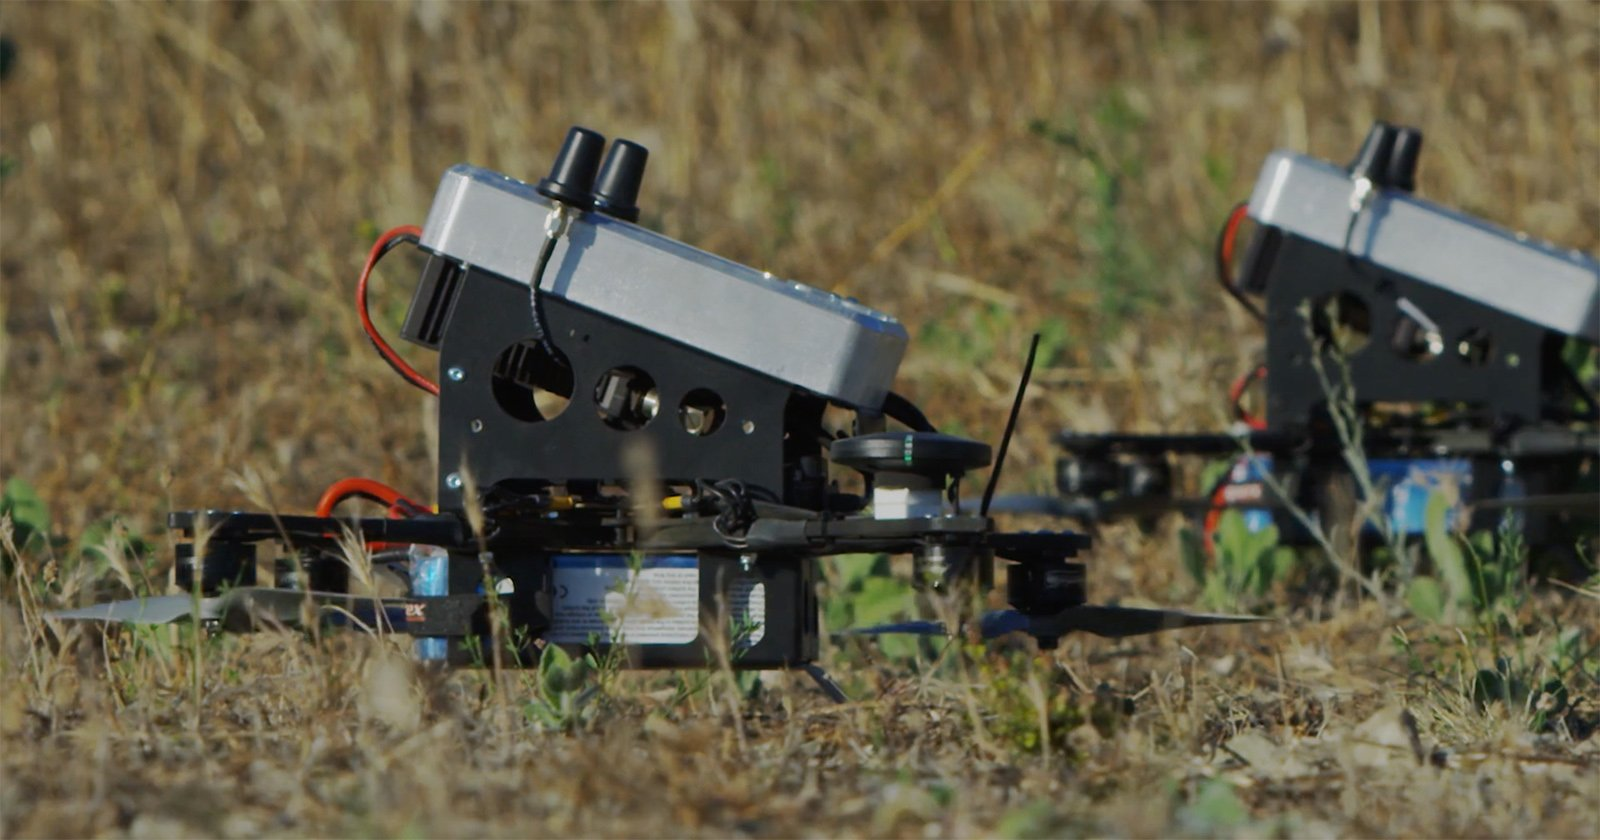 Watch Anduril's Battering-Ram Drone Knock Other Drones Out of the Sky